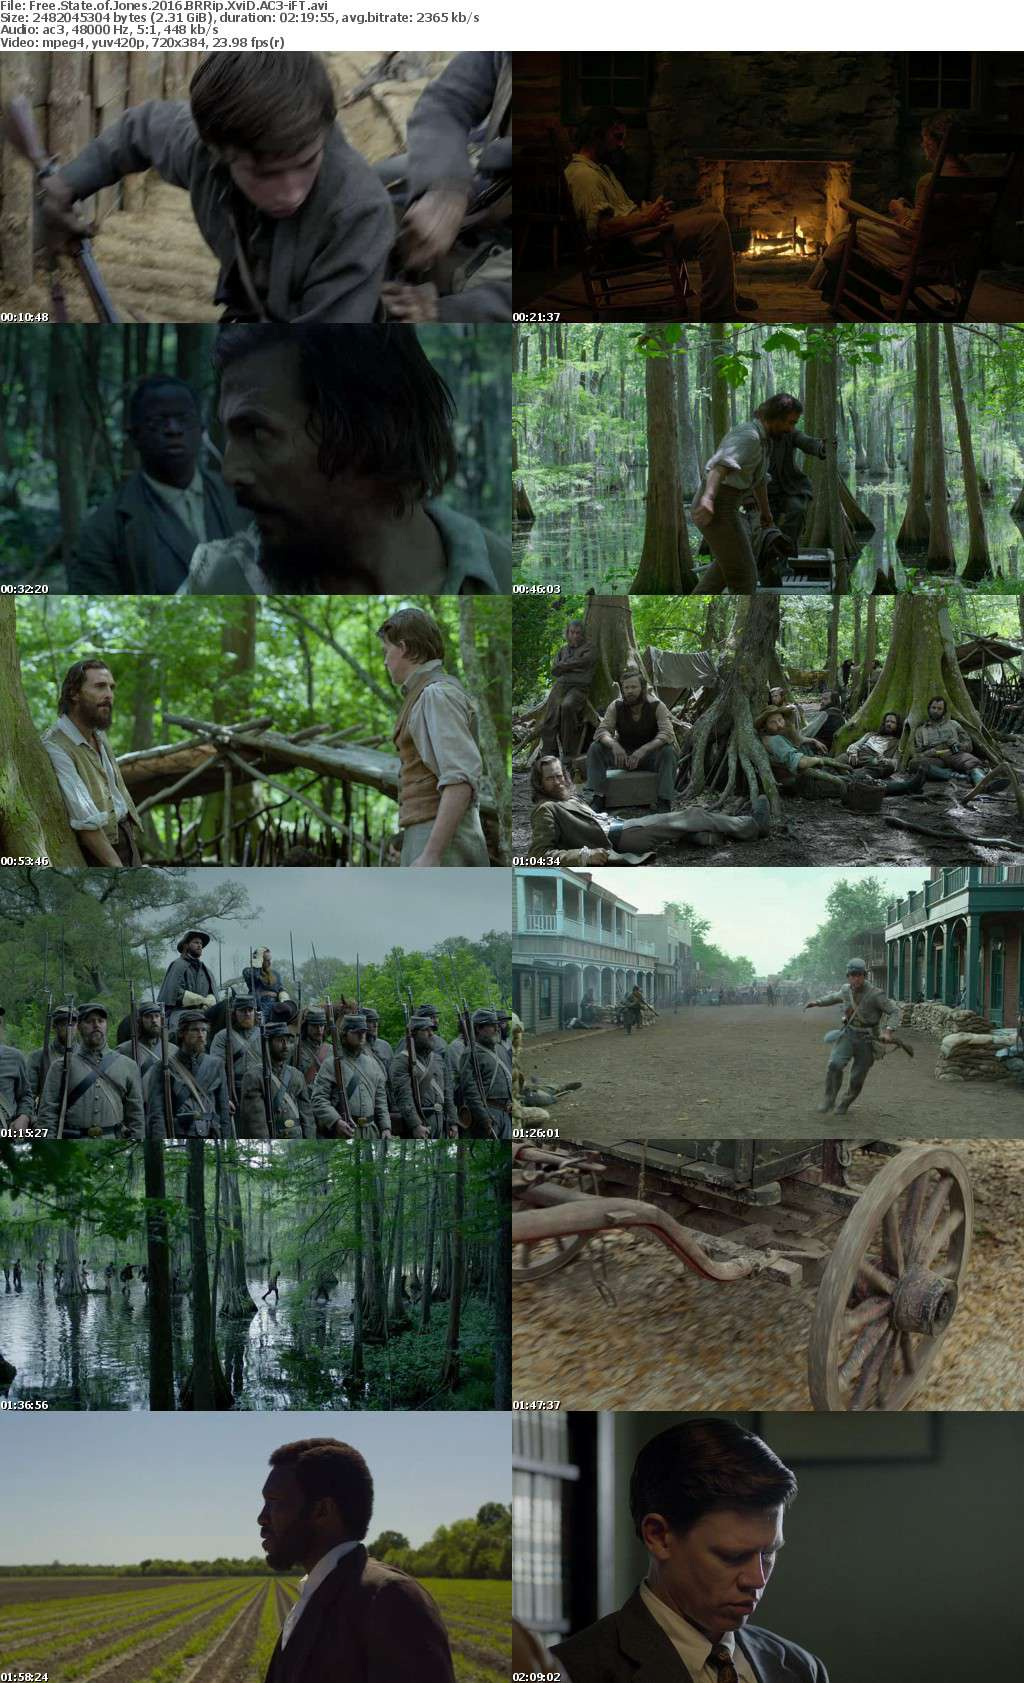 Free State of Jones 2016 BRRip XviD AC3-iFT